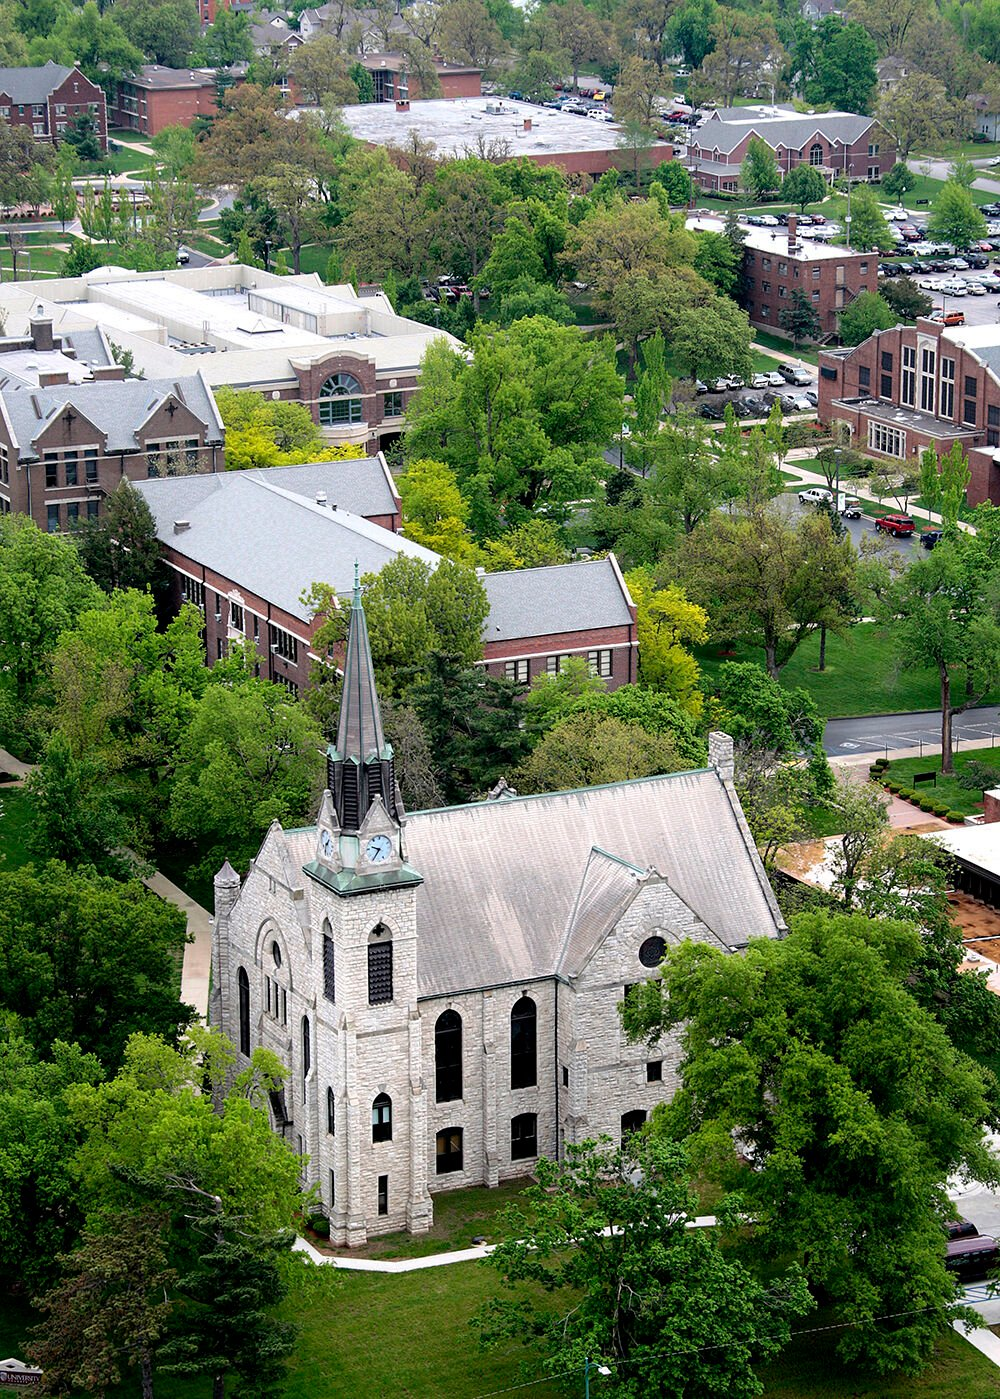 Nestled in the heart of Springfield, Missouri, the 140-year-old Stone Chapel welcomes visitors to the Drury University campus.